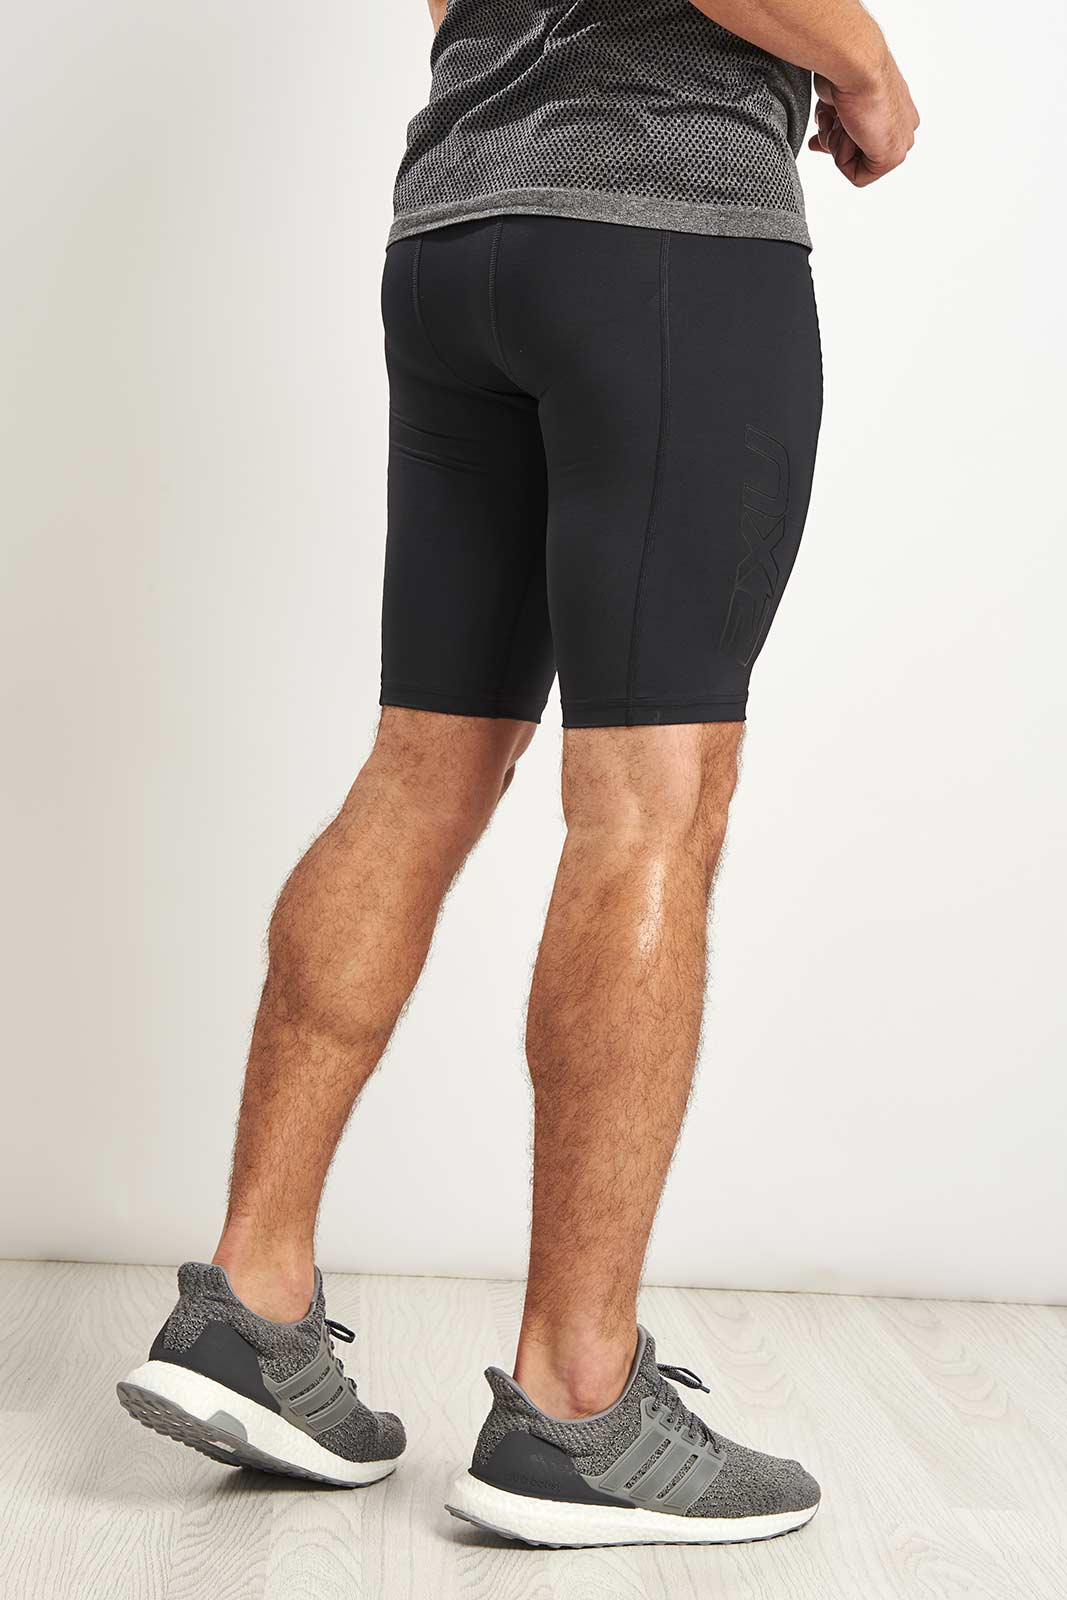 2XU Accelerate Comp Shorts Blk/Nero image 2 - The Sports Edit